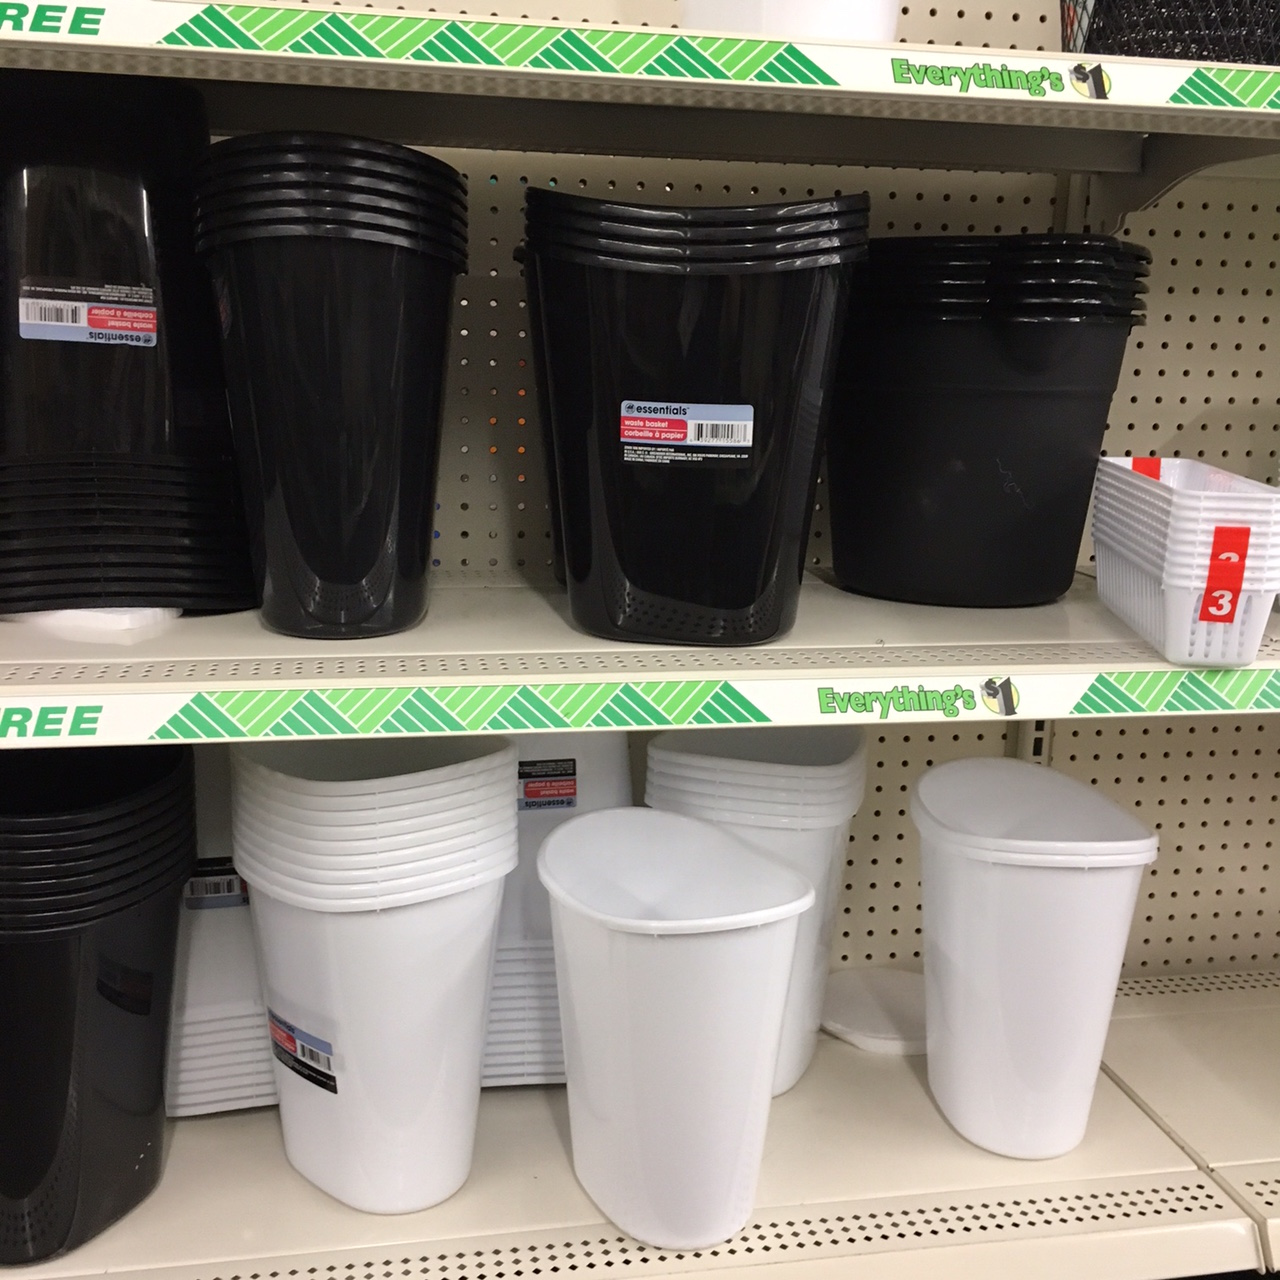 trash cans at Dollar Tree